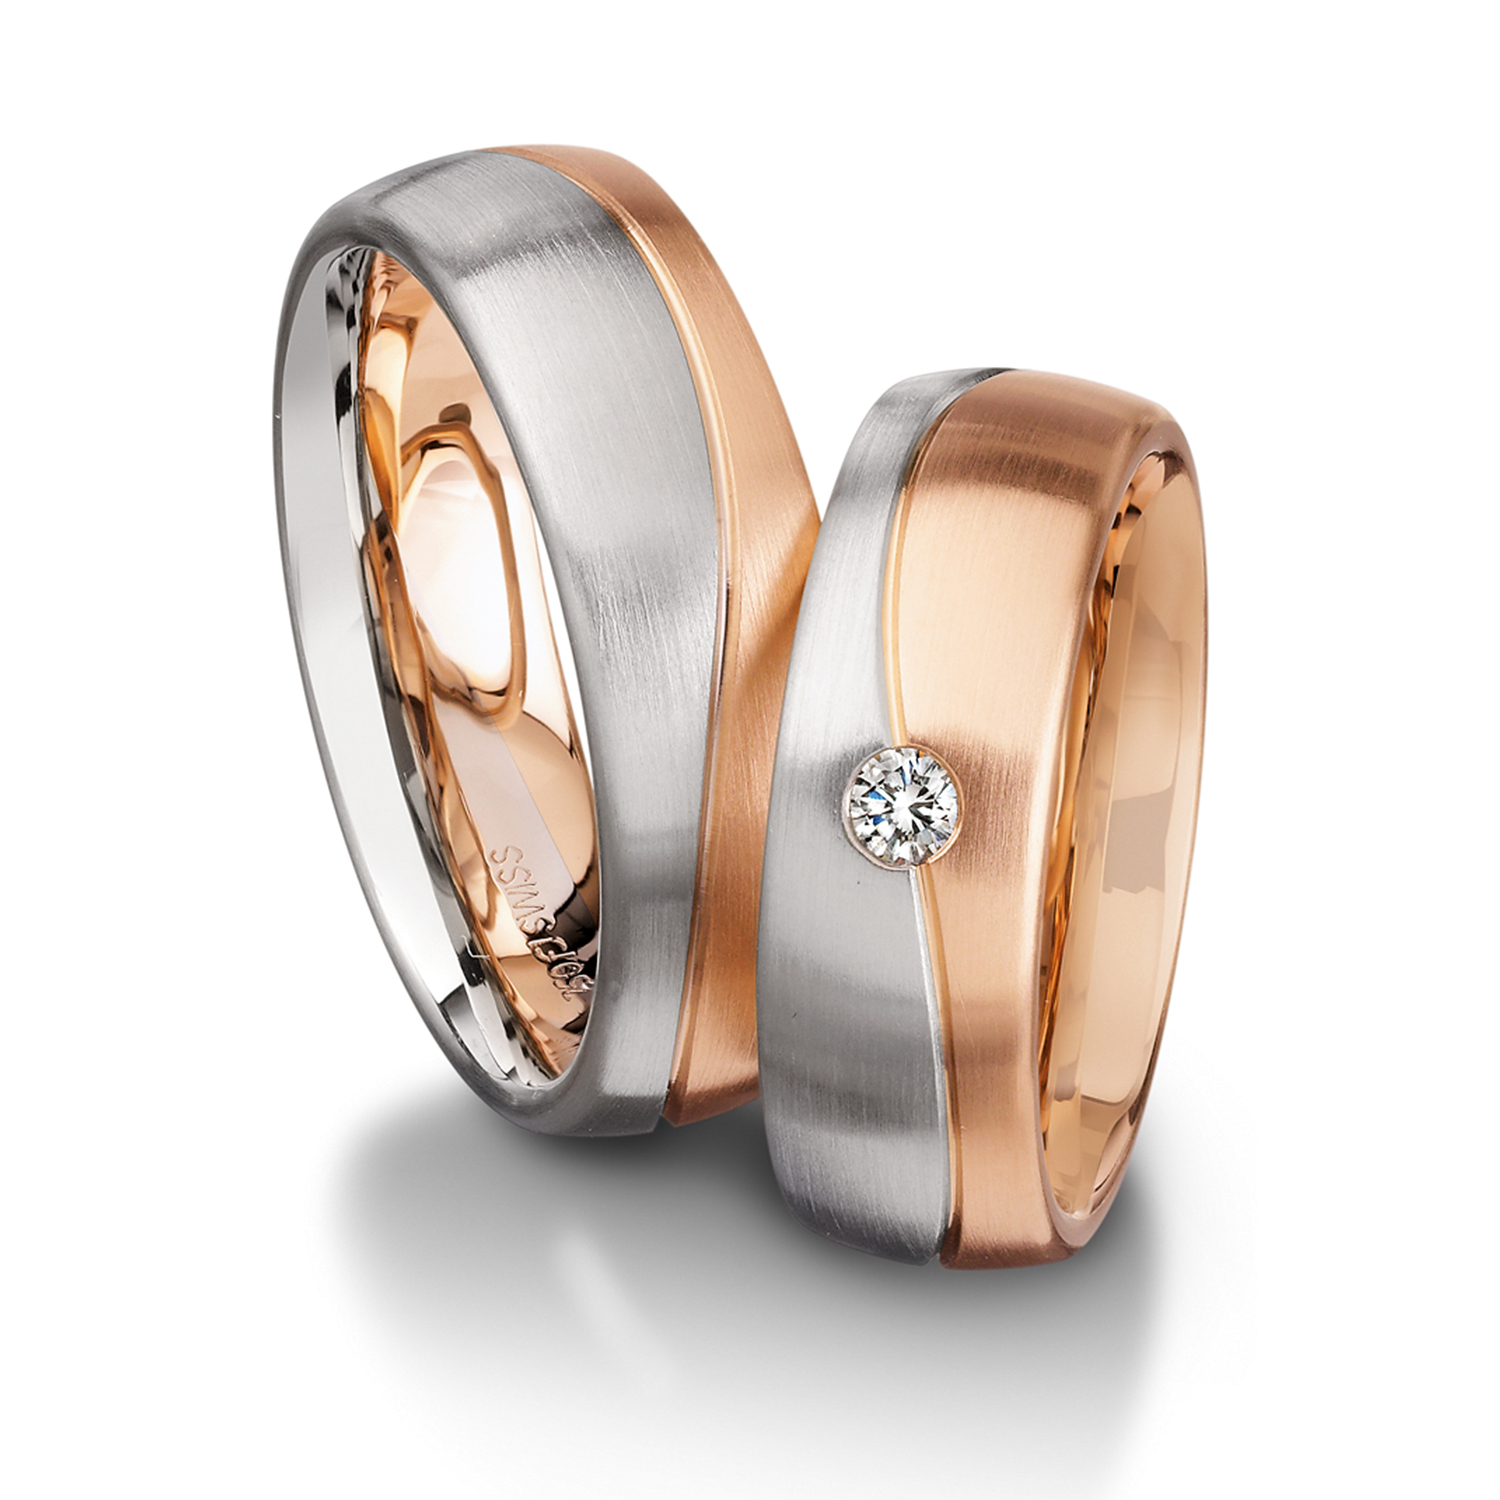 wedding bands in gold, platinum, palladium, multicolor with diamonds